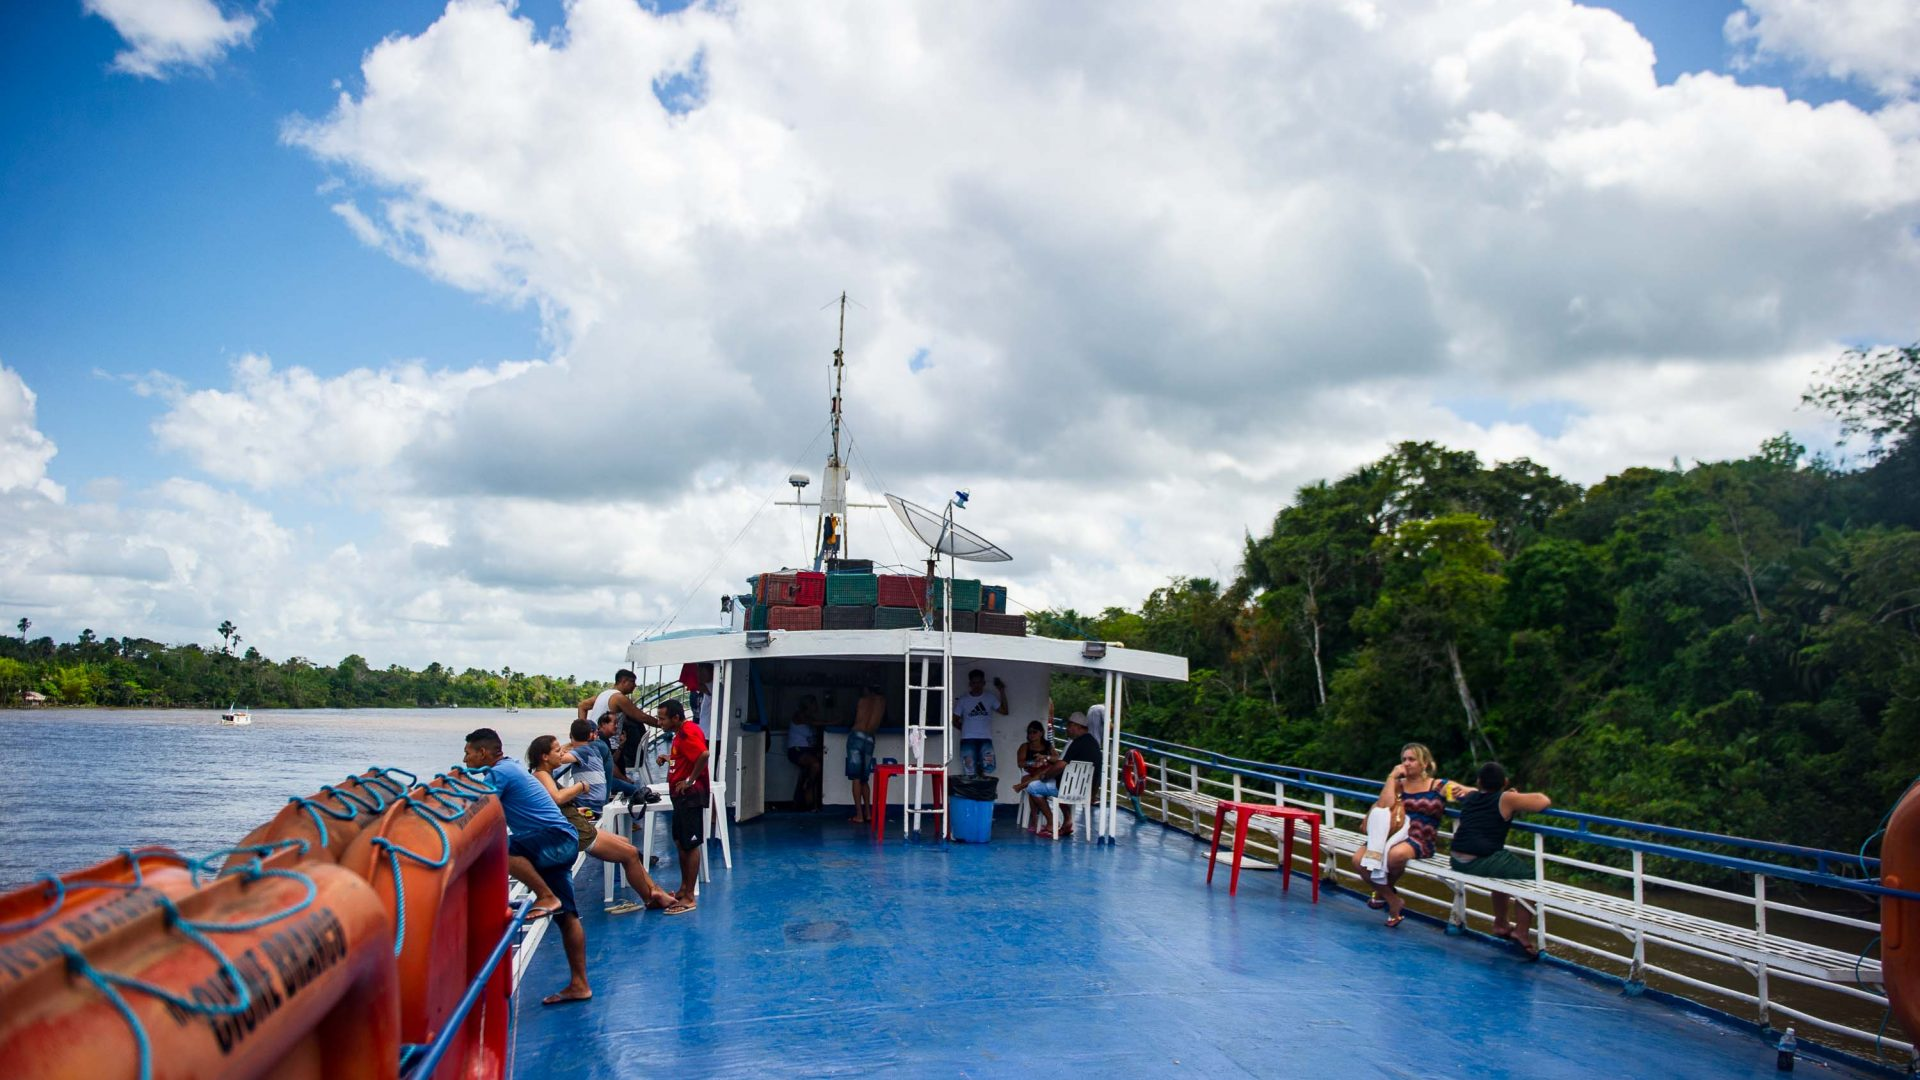 Passengers relax on the deck of Cisne Branco riverboat.